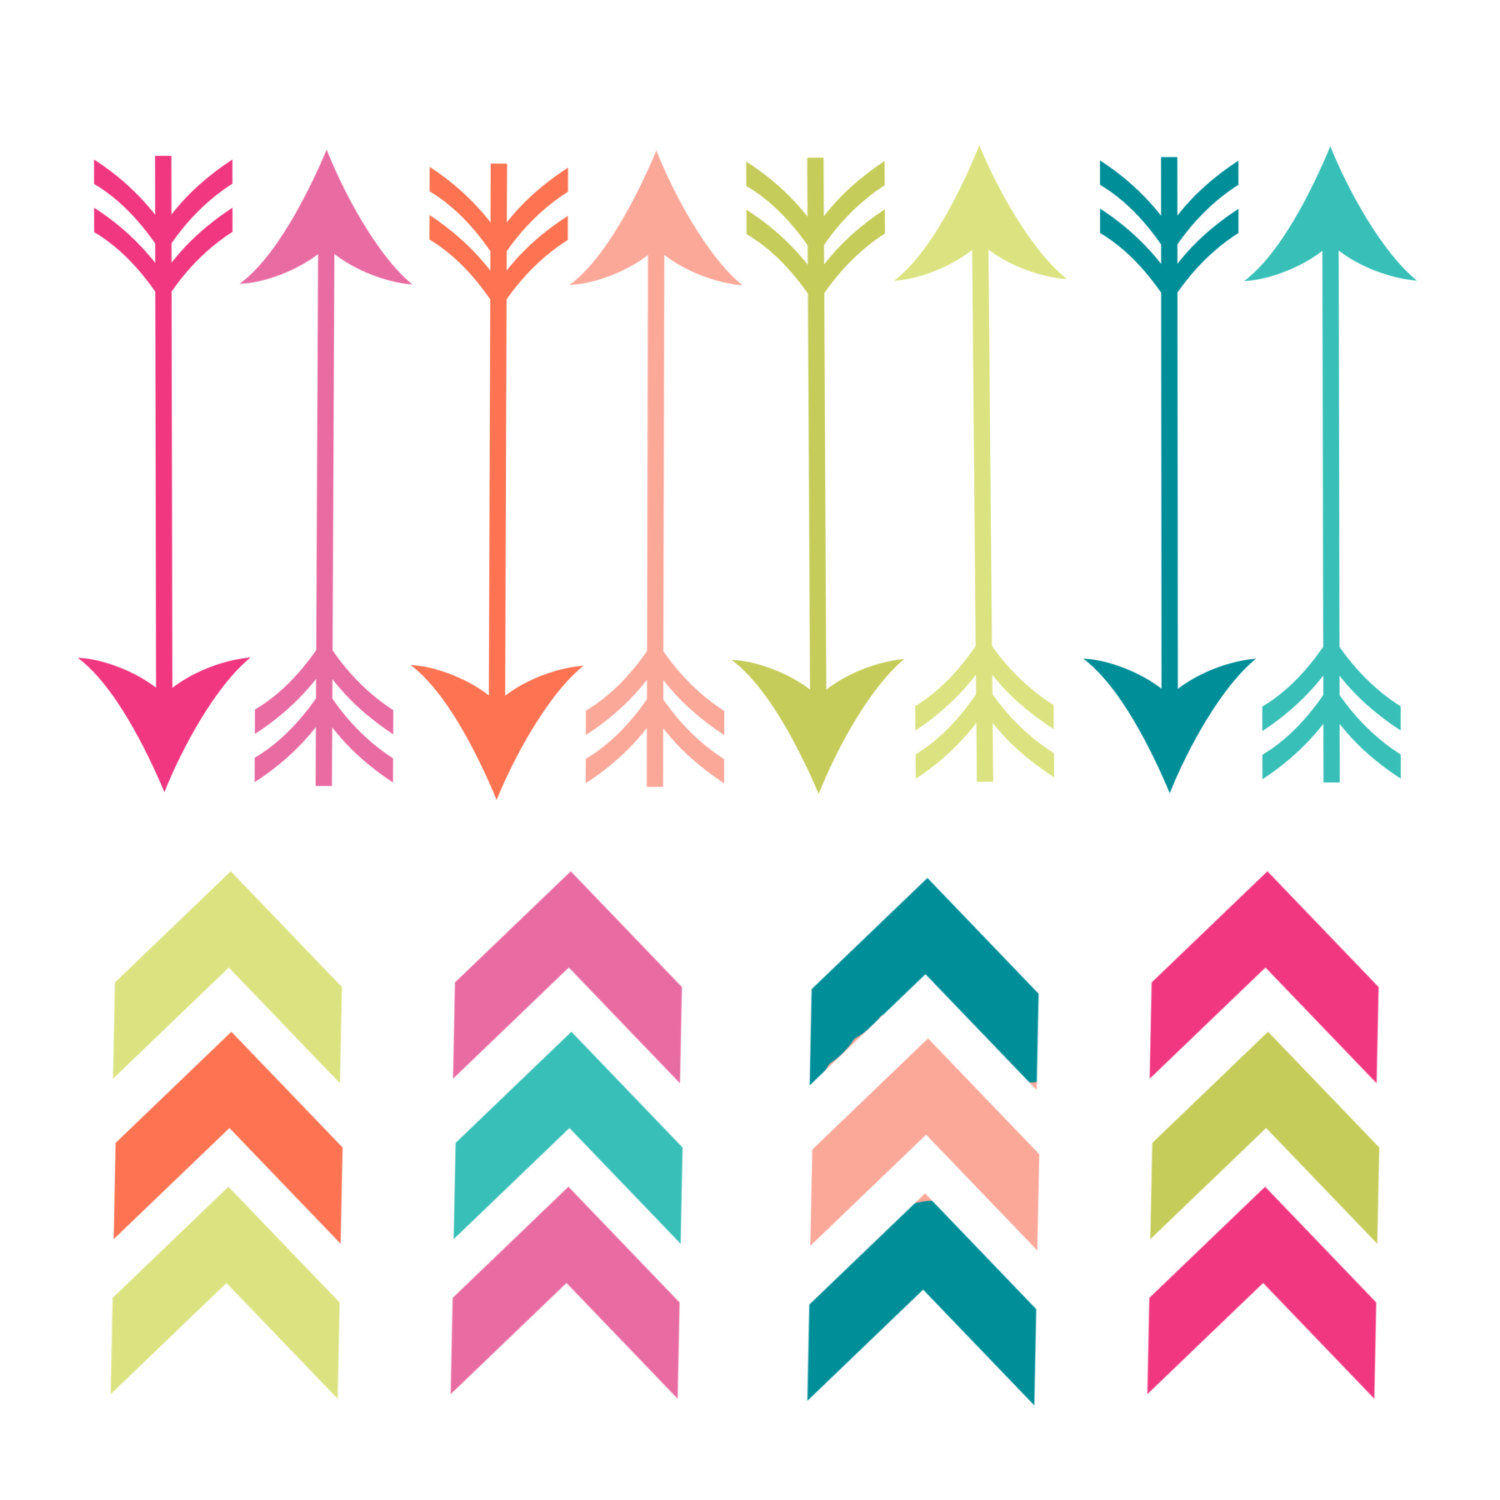 Free arrow clipart download - .